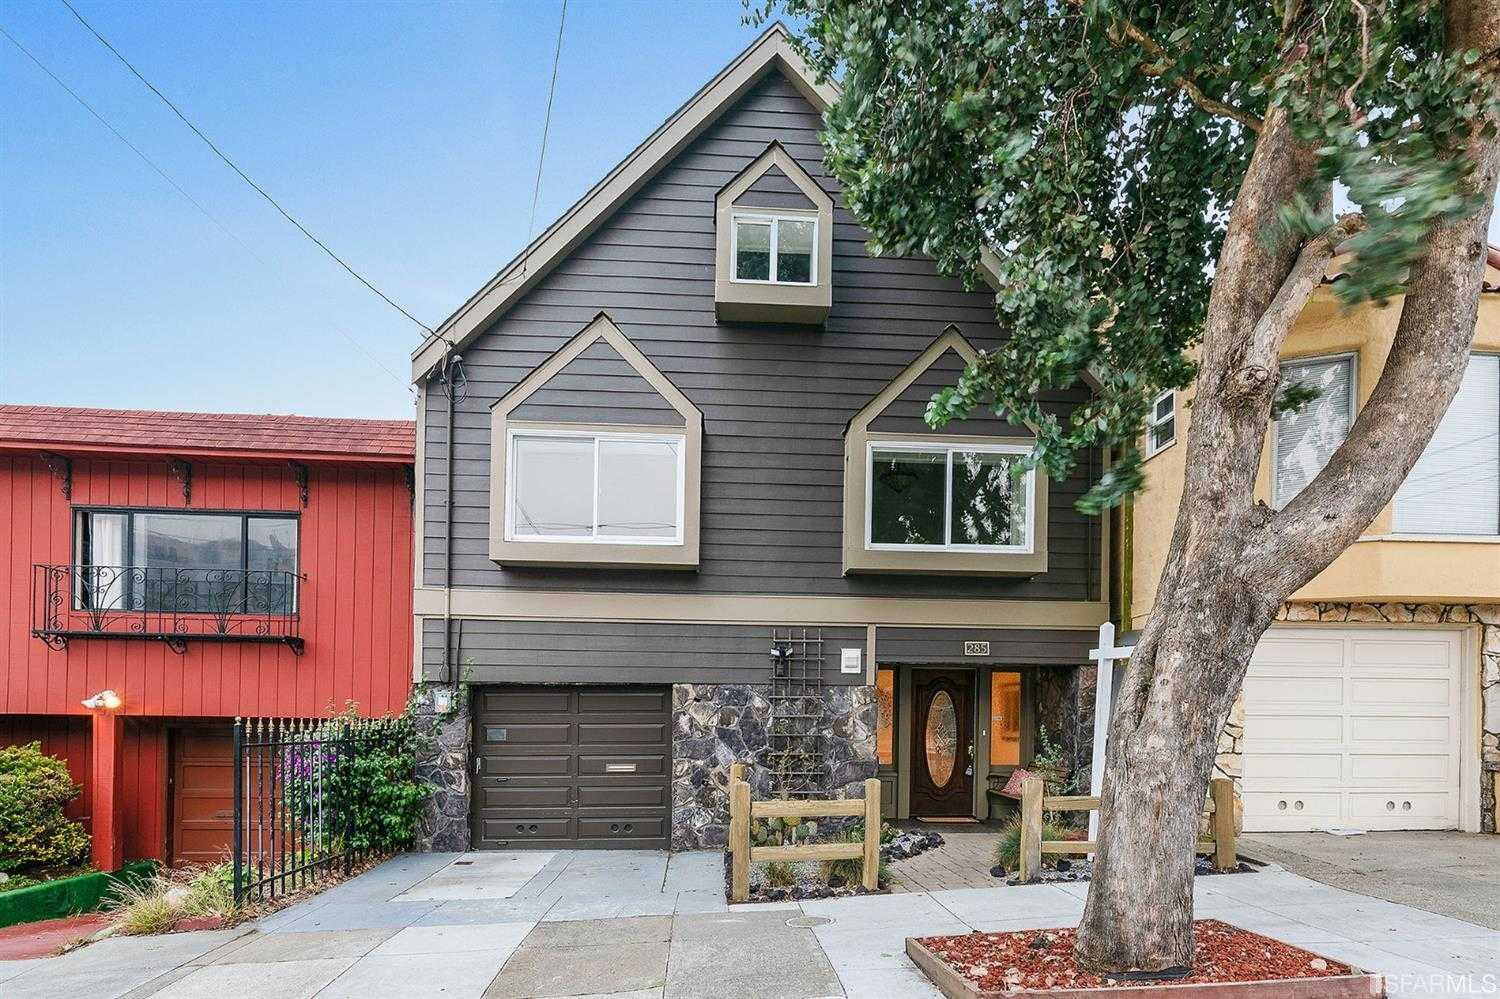 $1,195,000 - 4Br/2Ba -  for Sale in San Francisco